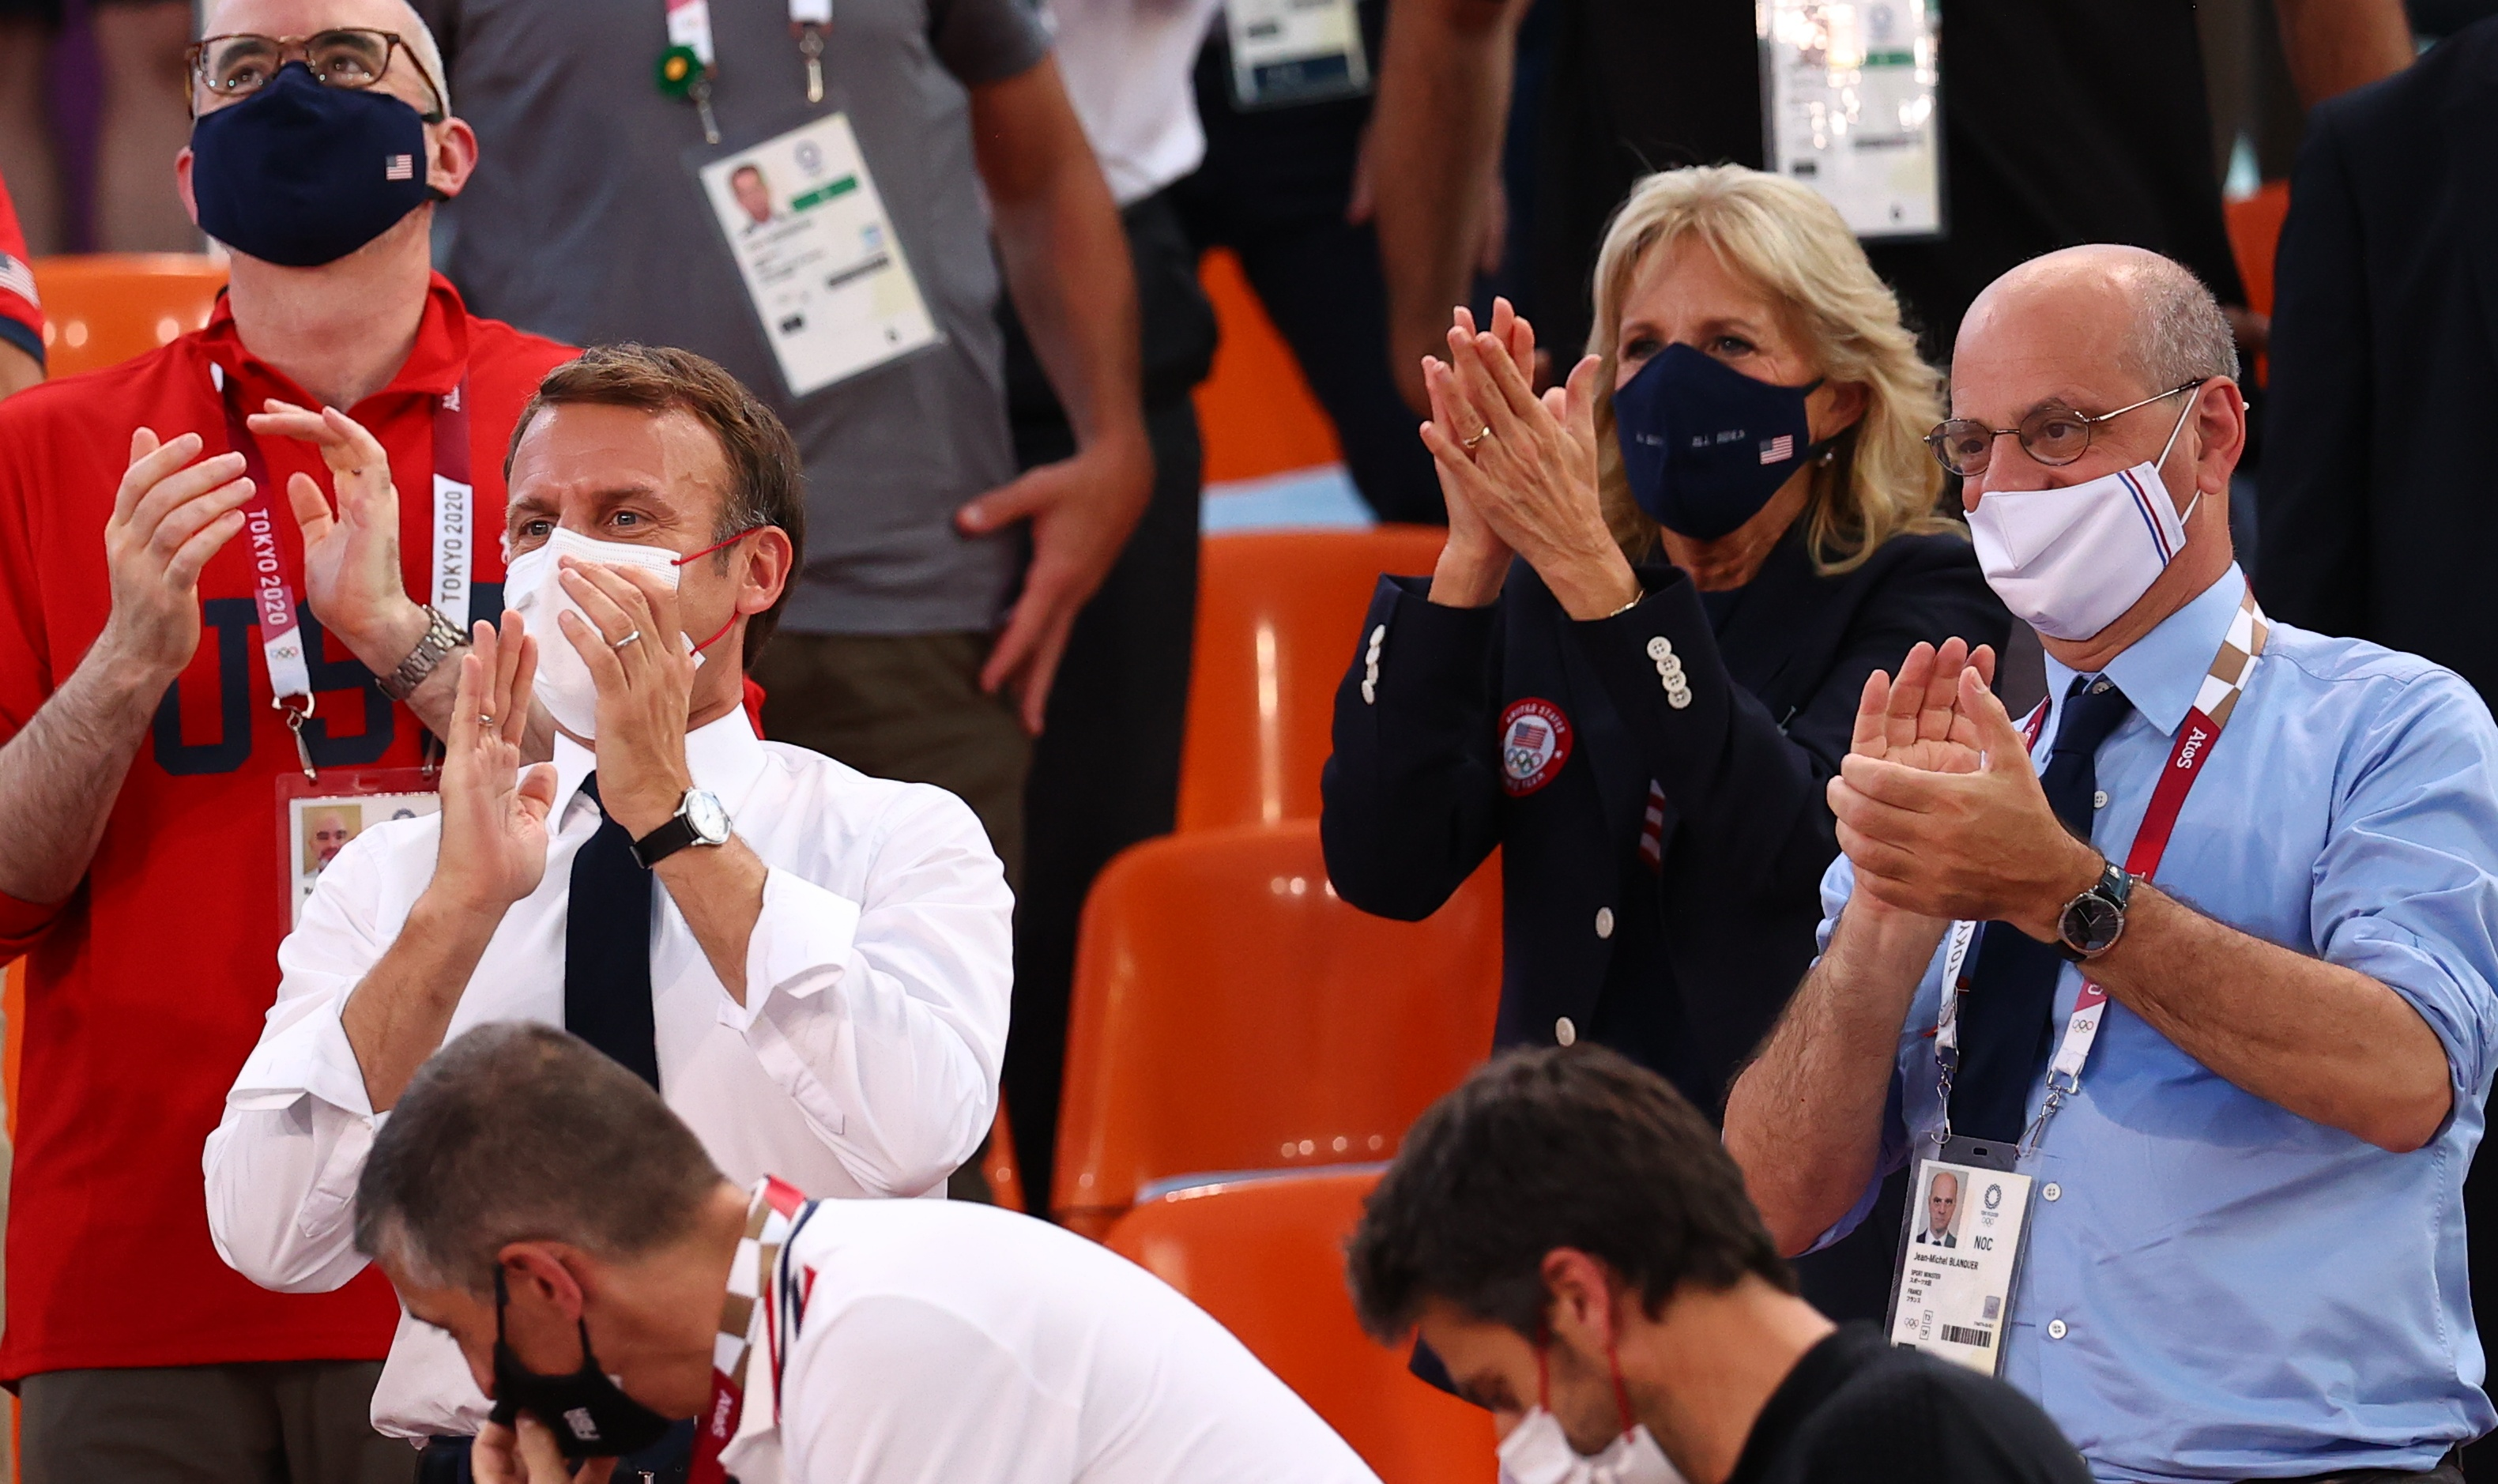 Tokyo 2020 Olympics - Basketball 3x3 - Women - Pool A - United States v France - Aomi Urban Sports Park, Tokyo, Japan - July 24, 2021. France president Emmanuel Macron and U.S. First Lady Jill Biden applaud as they attend the match. REUTERS/Andrew Boyers